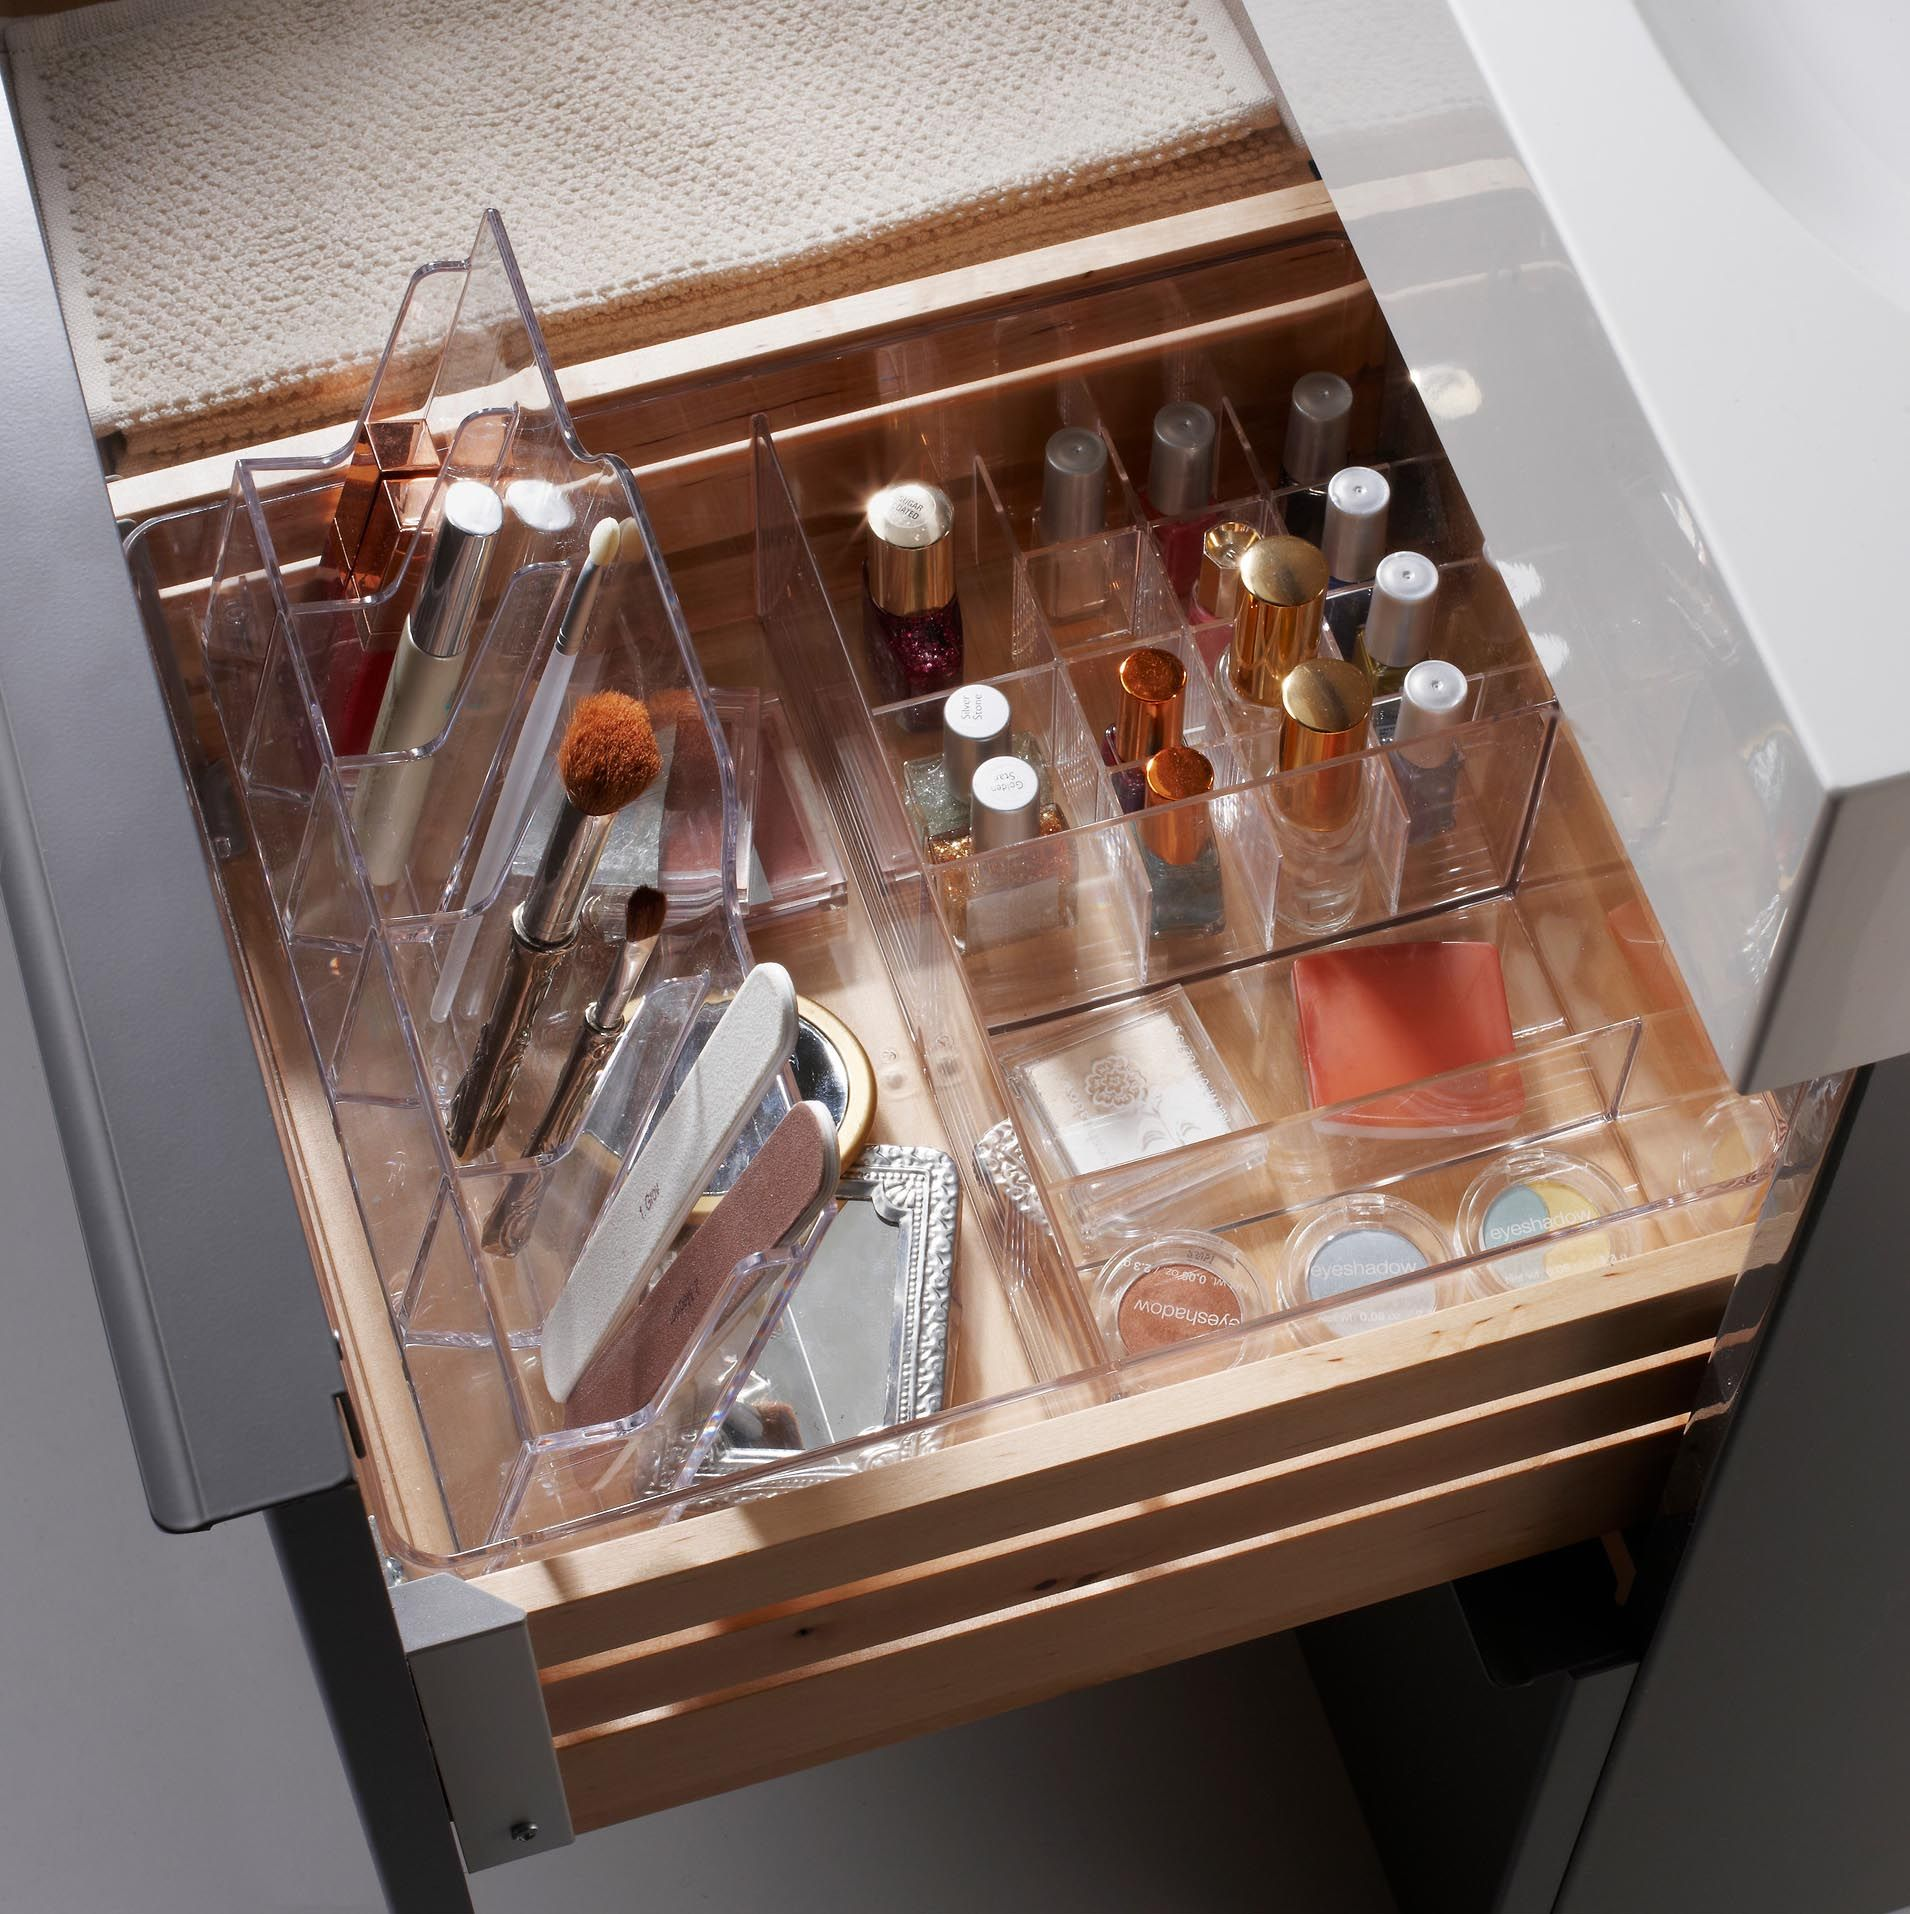 Rangements Couverts Ikea Good Of The Most Genius Organizers At Ikea Right Now With